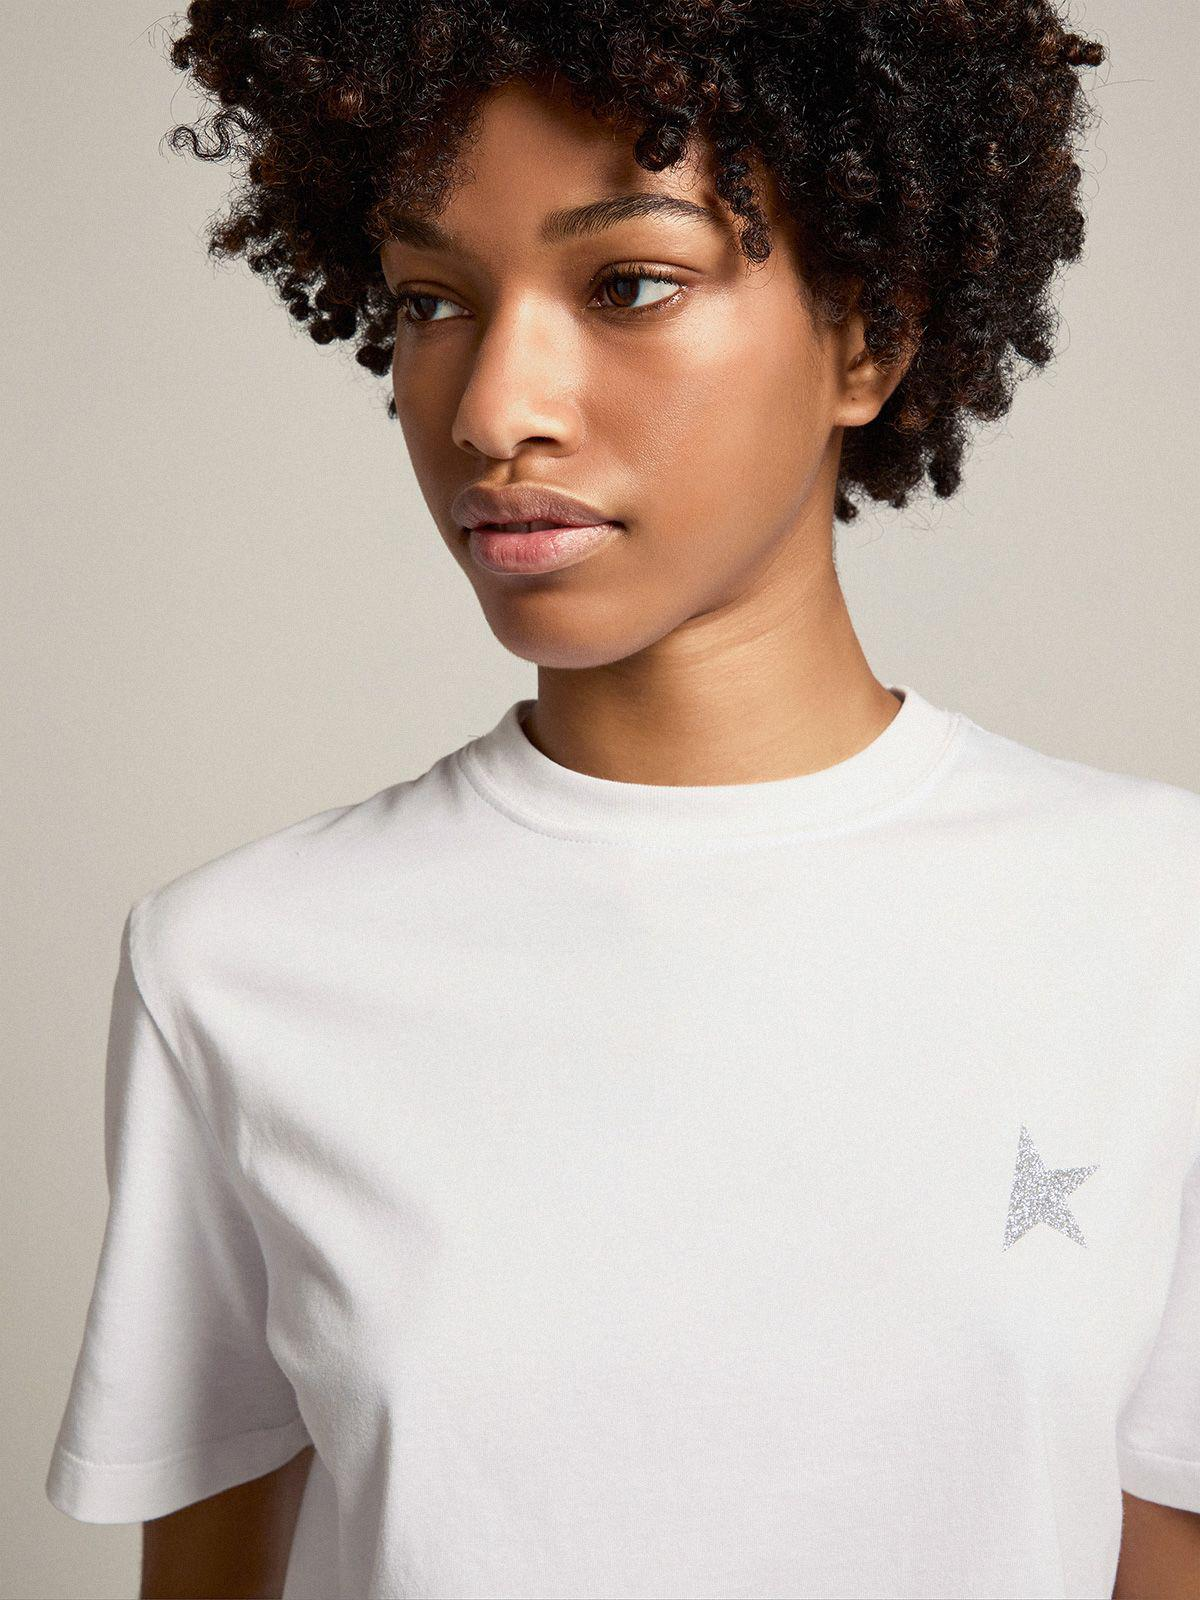 White Star Collection T-shirt with star in silver glitter on the front